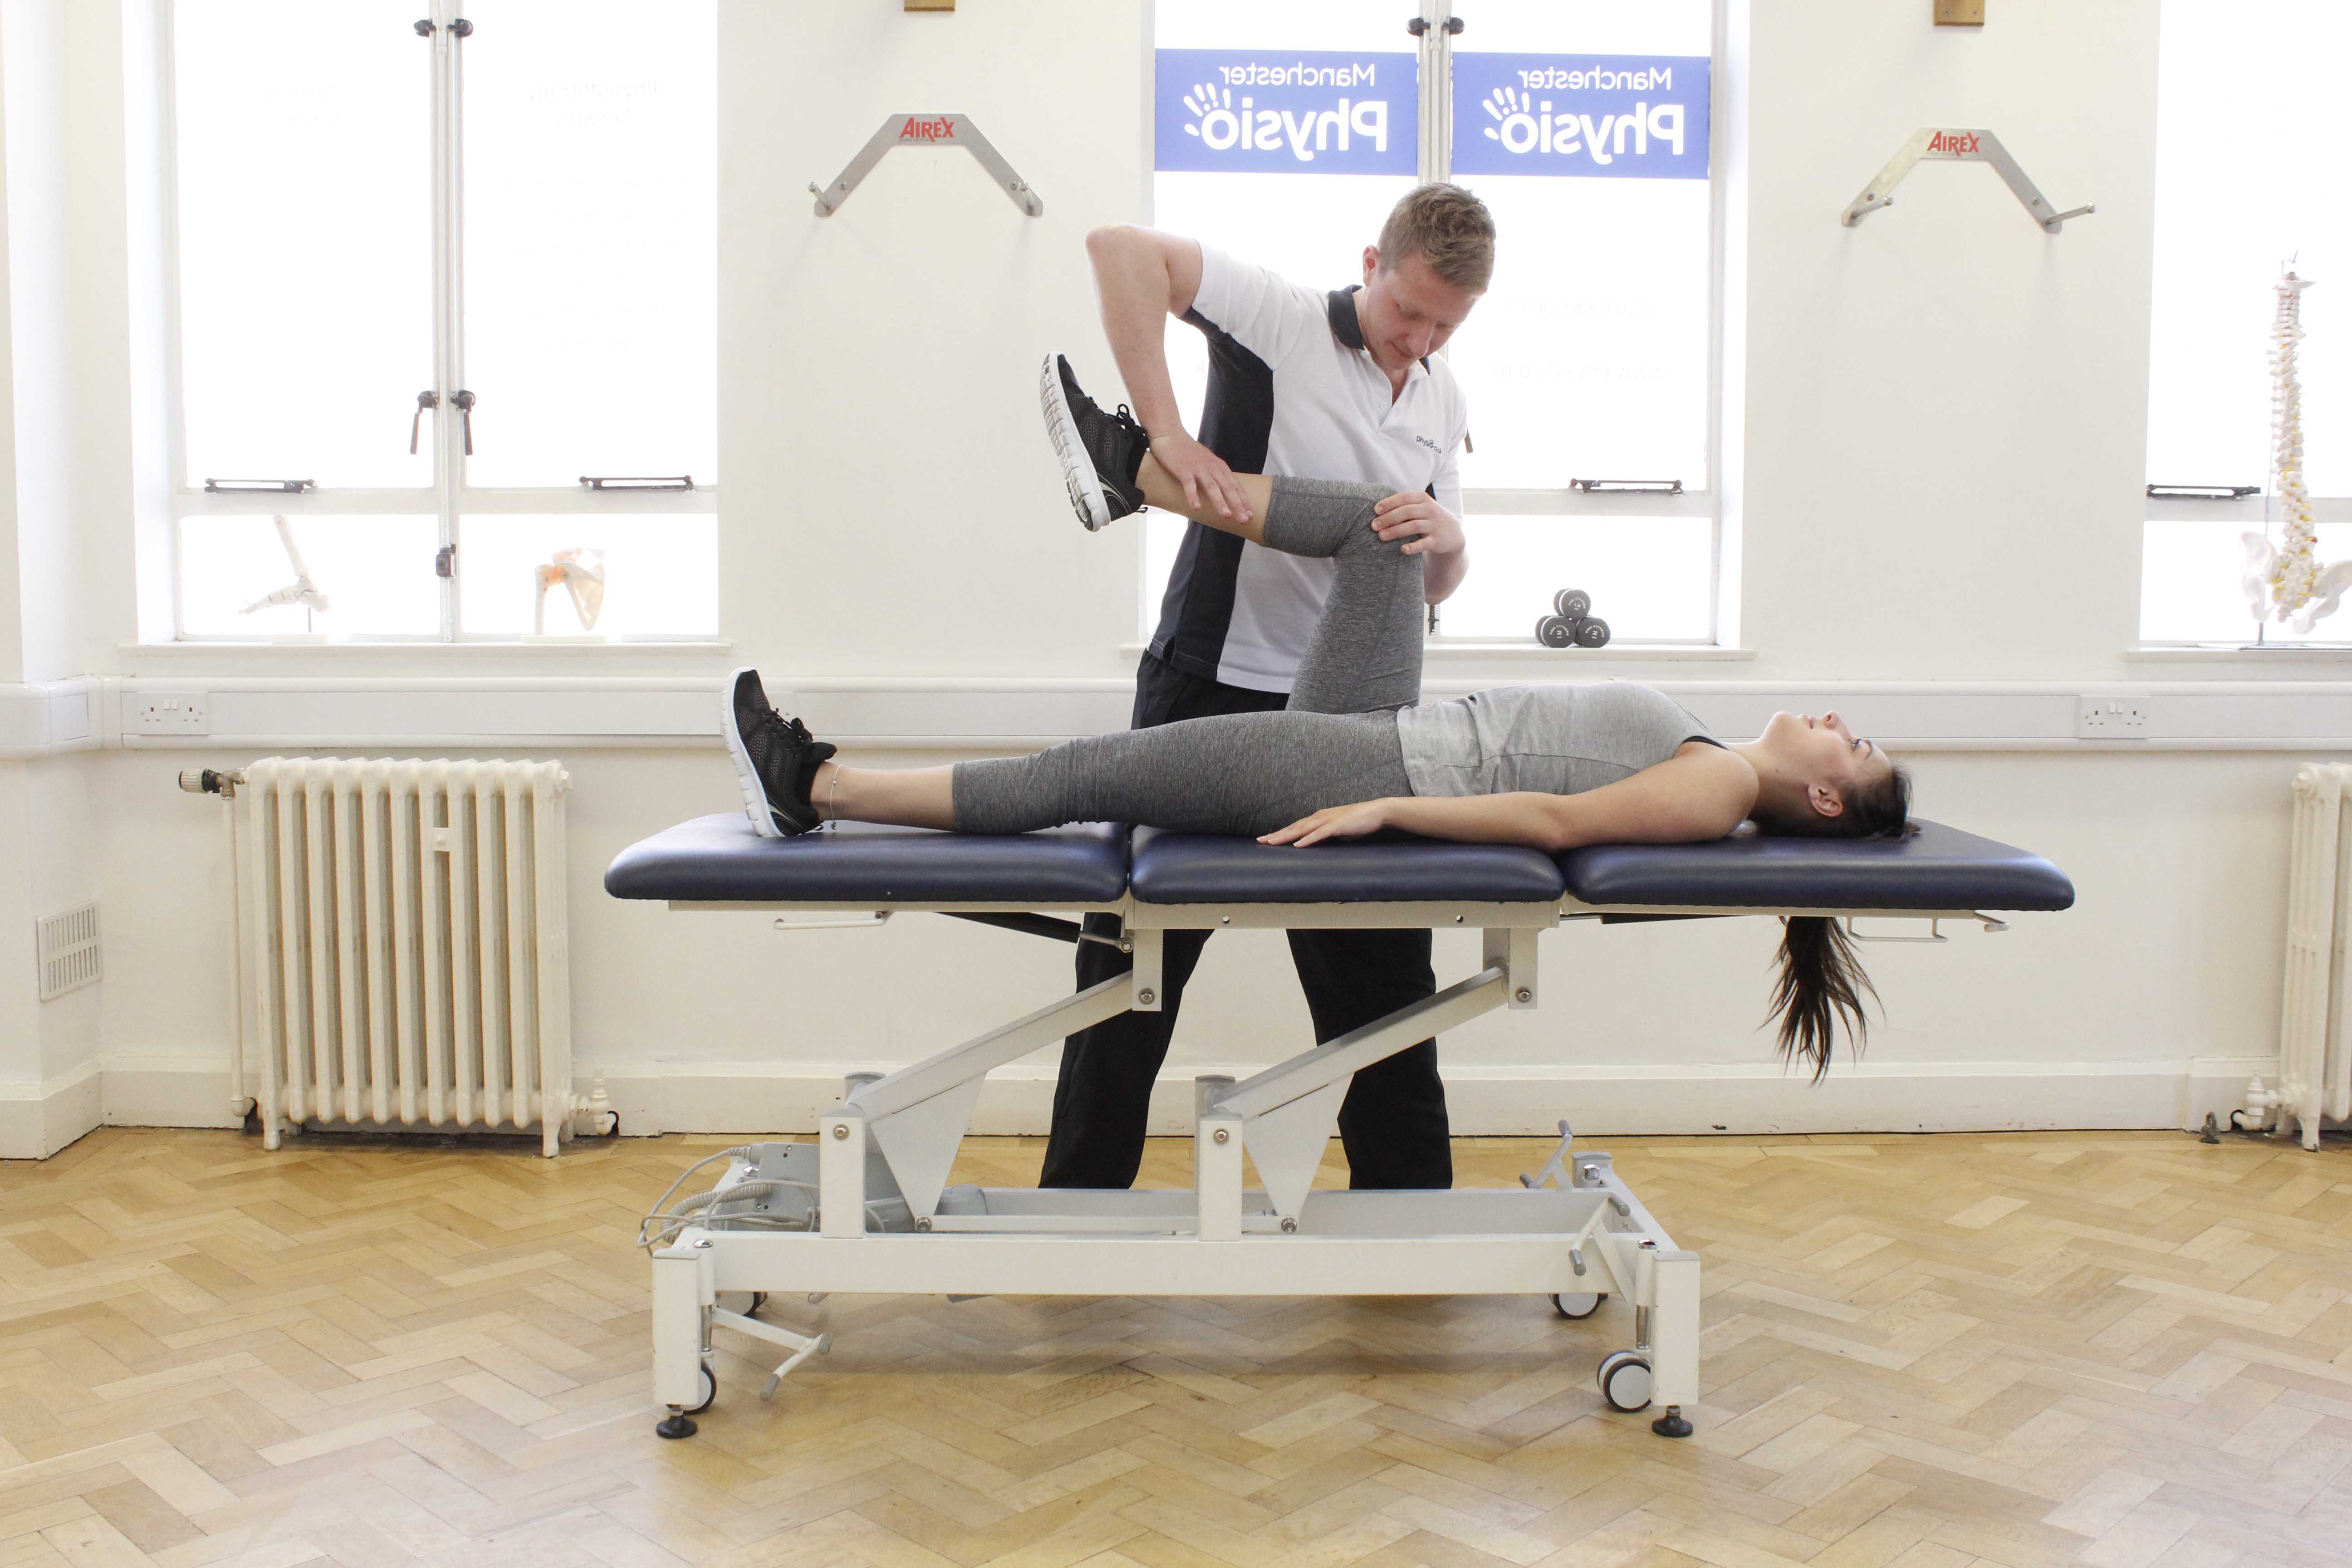 Mobilisations and stretches f the foot and ankle by an experienced physiotherapist